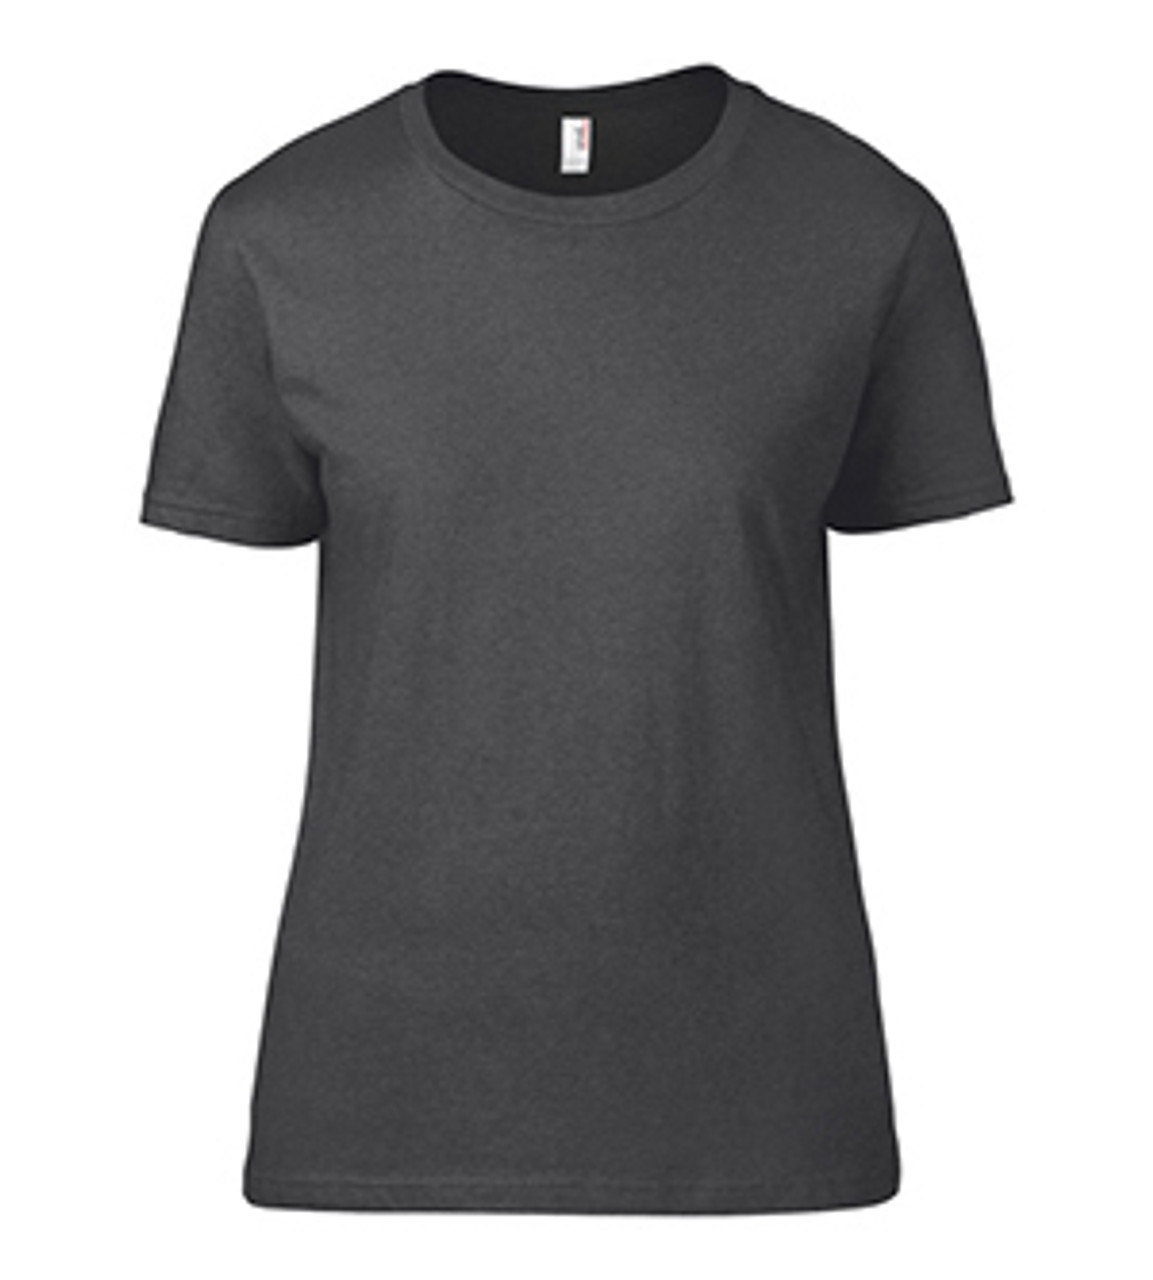 3eca6641 Anvil 880 Womens Lightweight T-Shirt